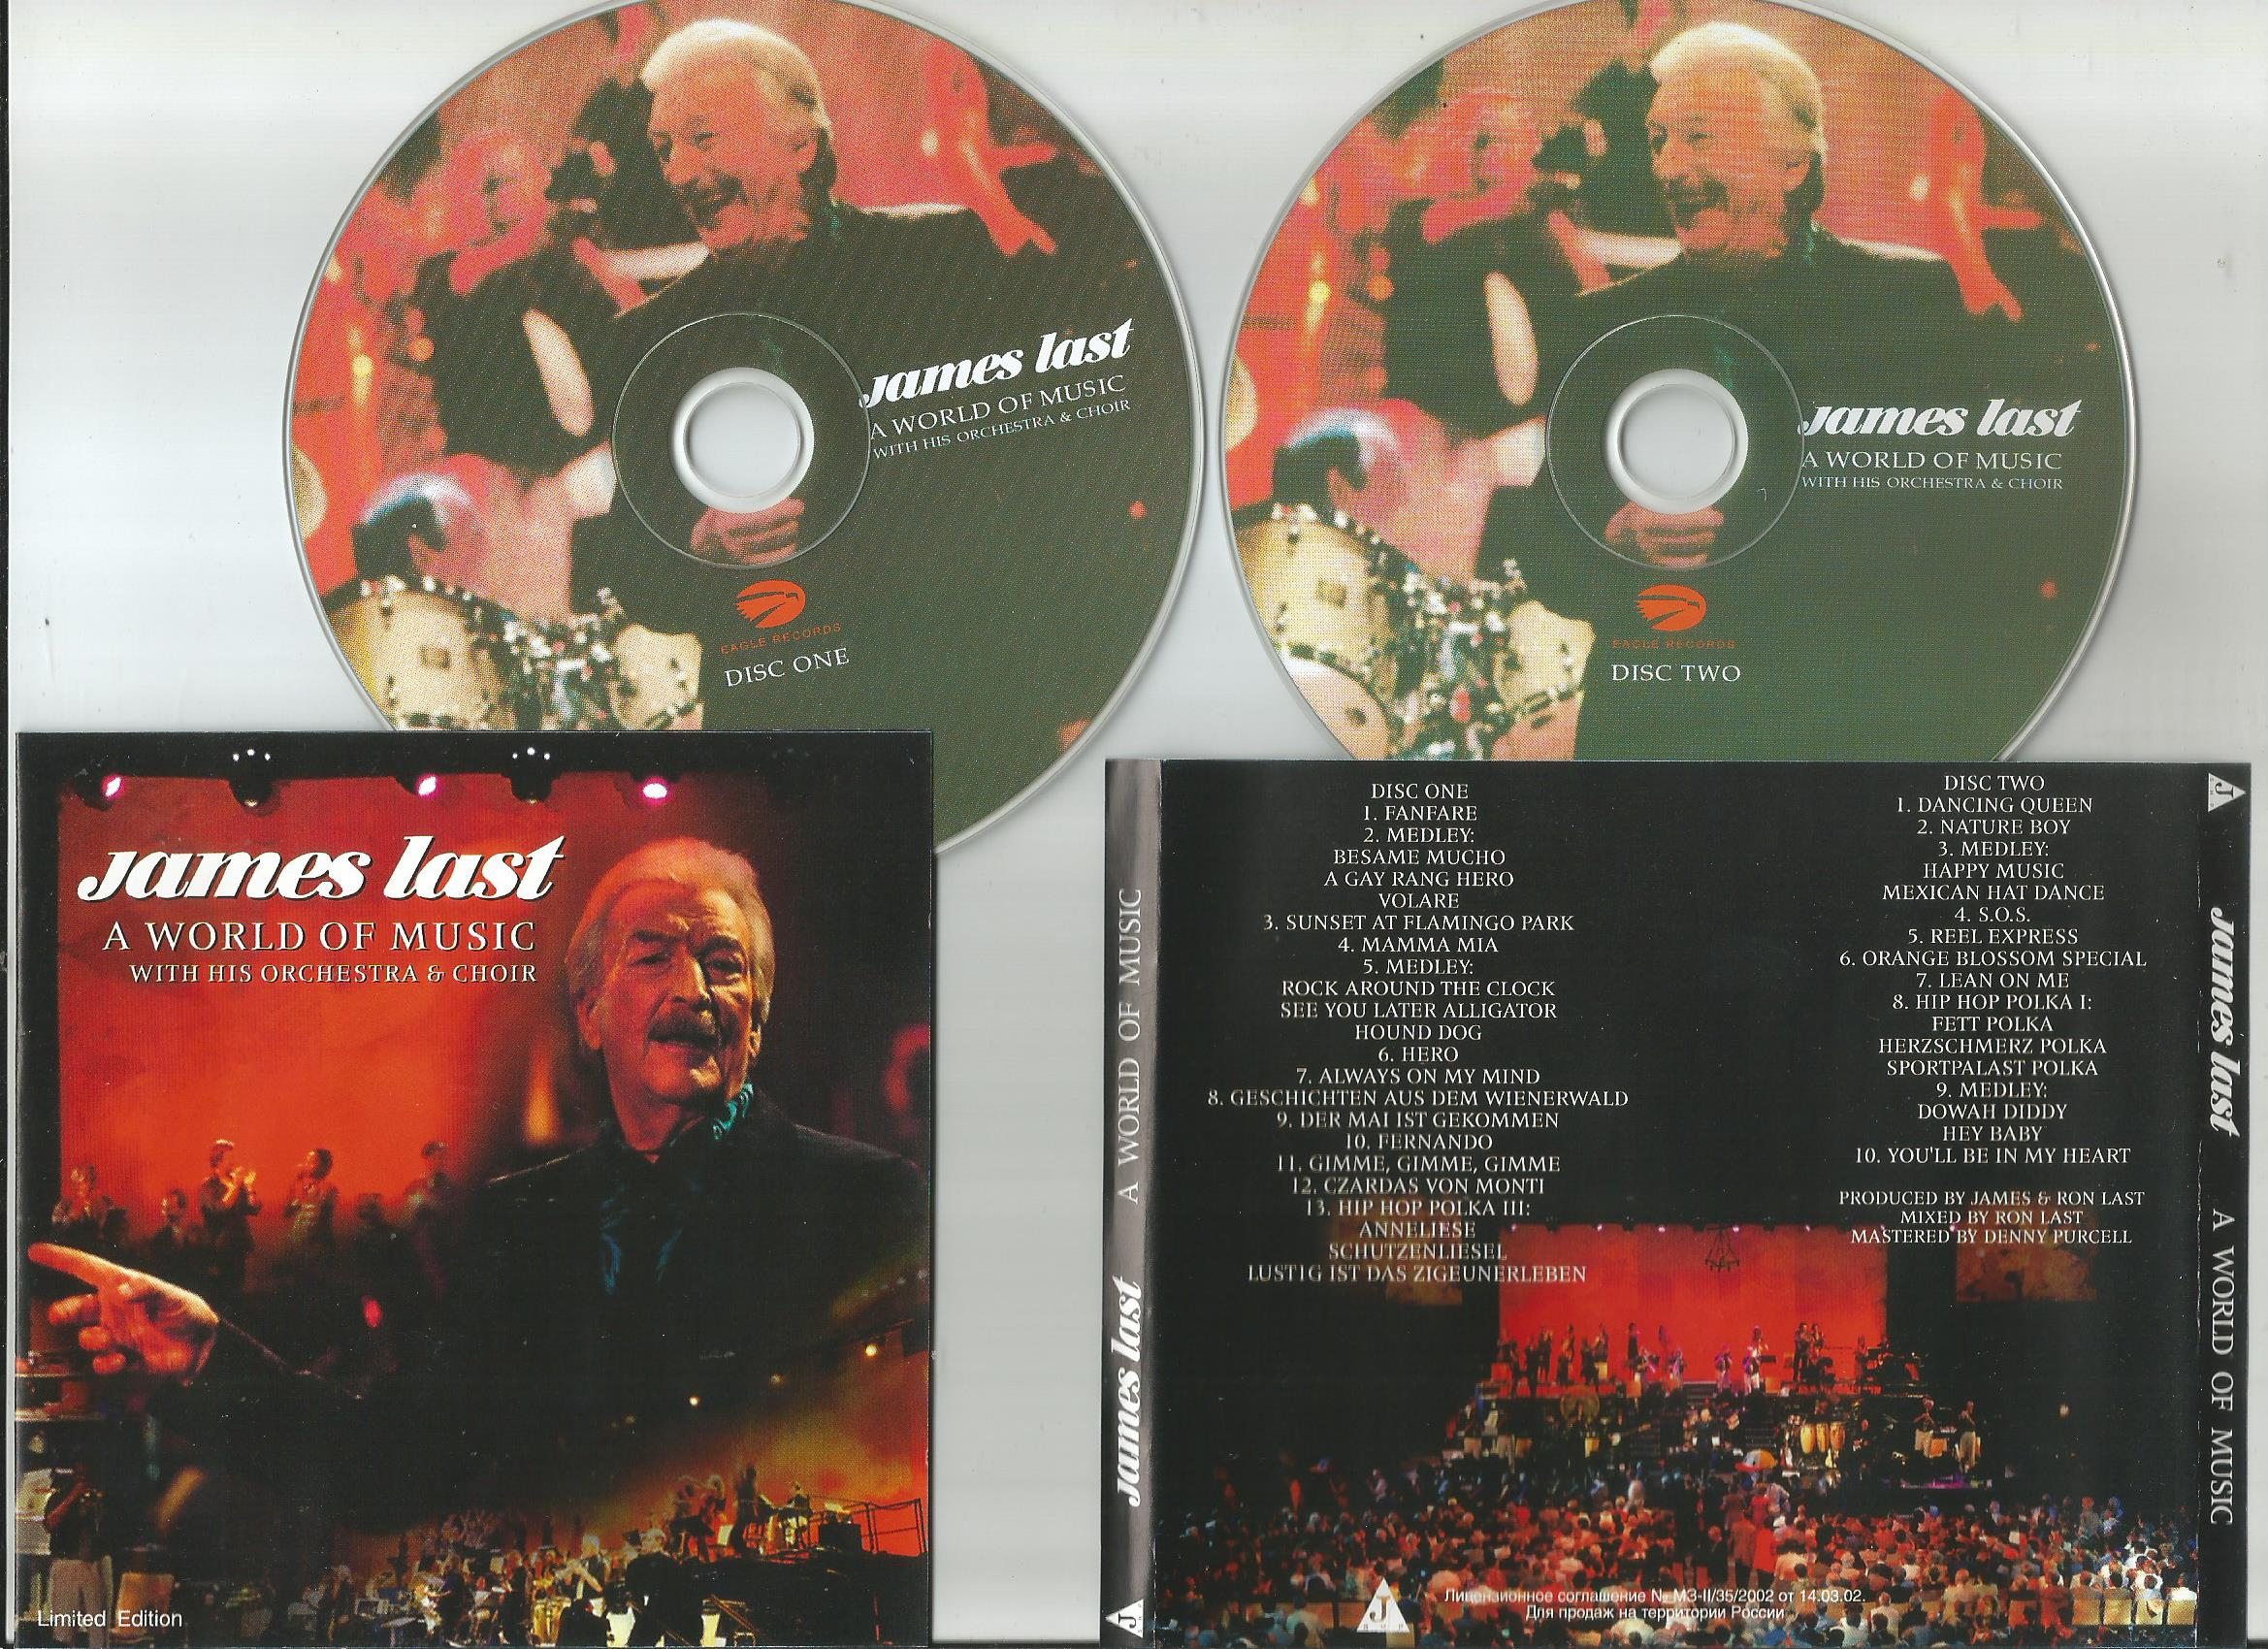 LAST, JAMES A World Of Music (with His orchestra & choir)(limited  edition)Die Grossten Songs Von The Beatles